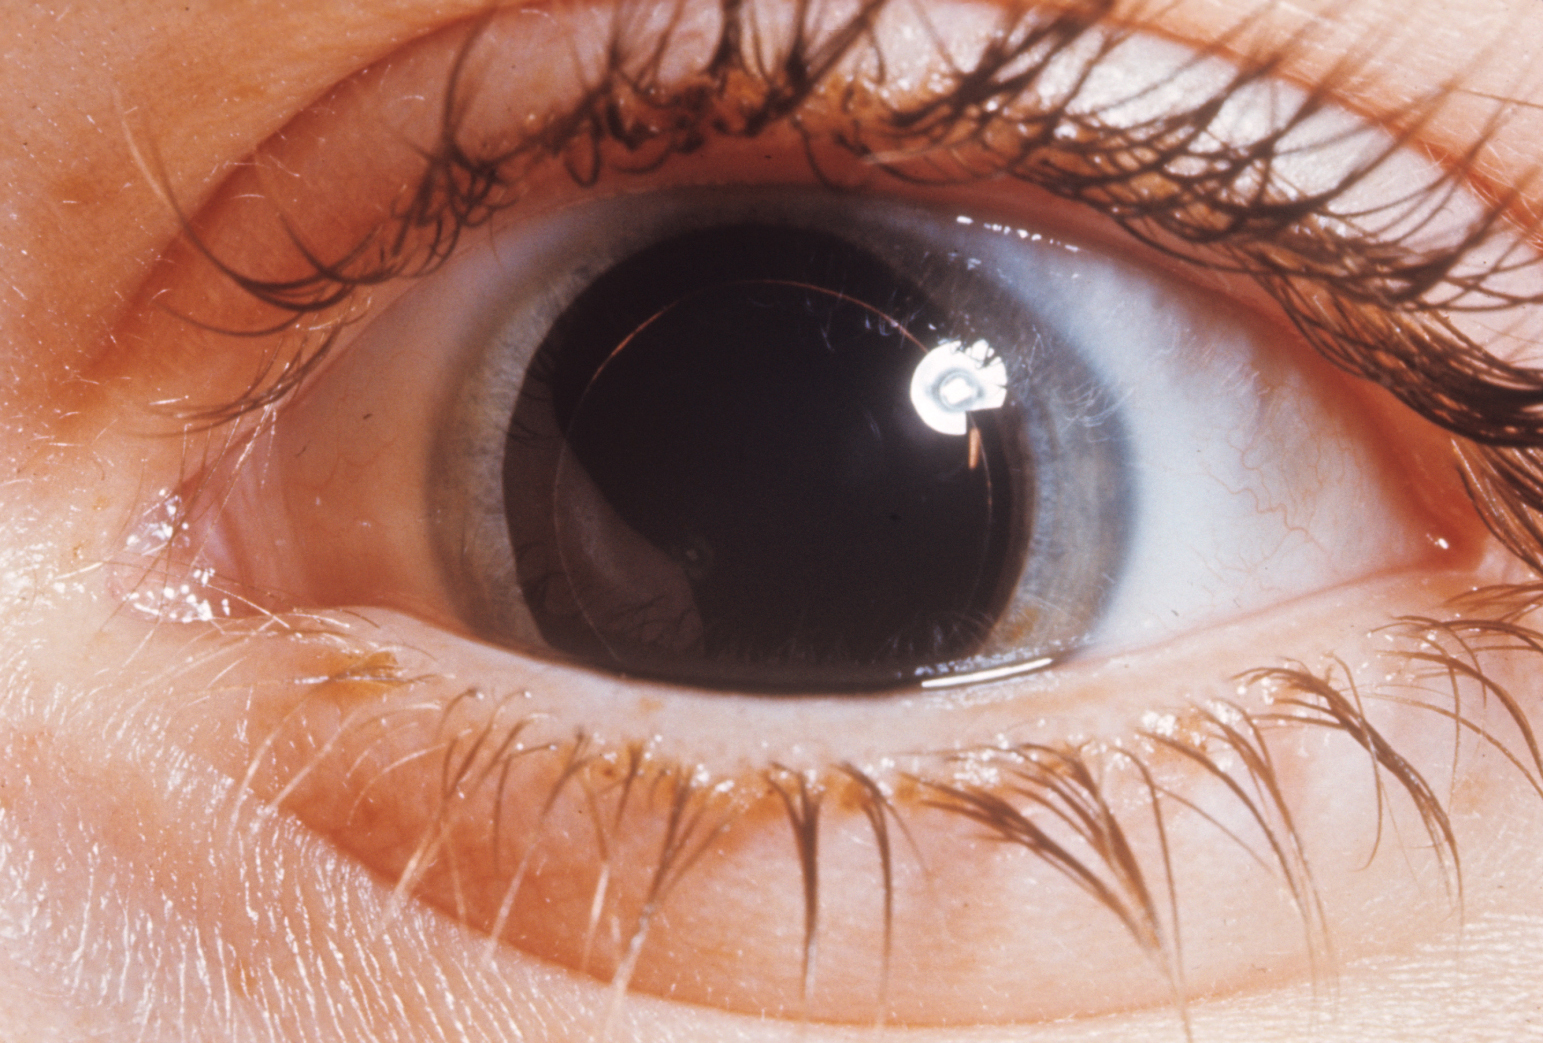 Dilated pupil in Weill-Marchisani syndrome showing small diameter lens